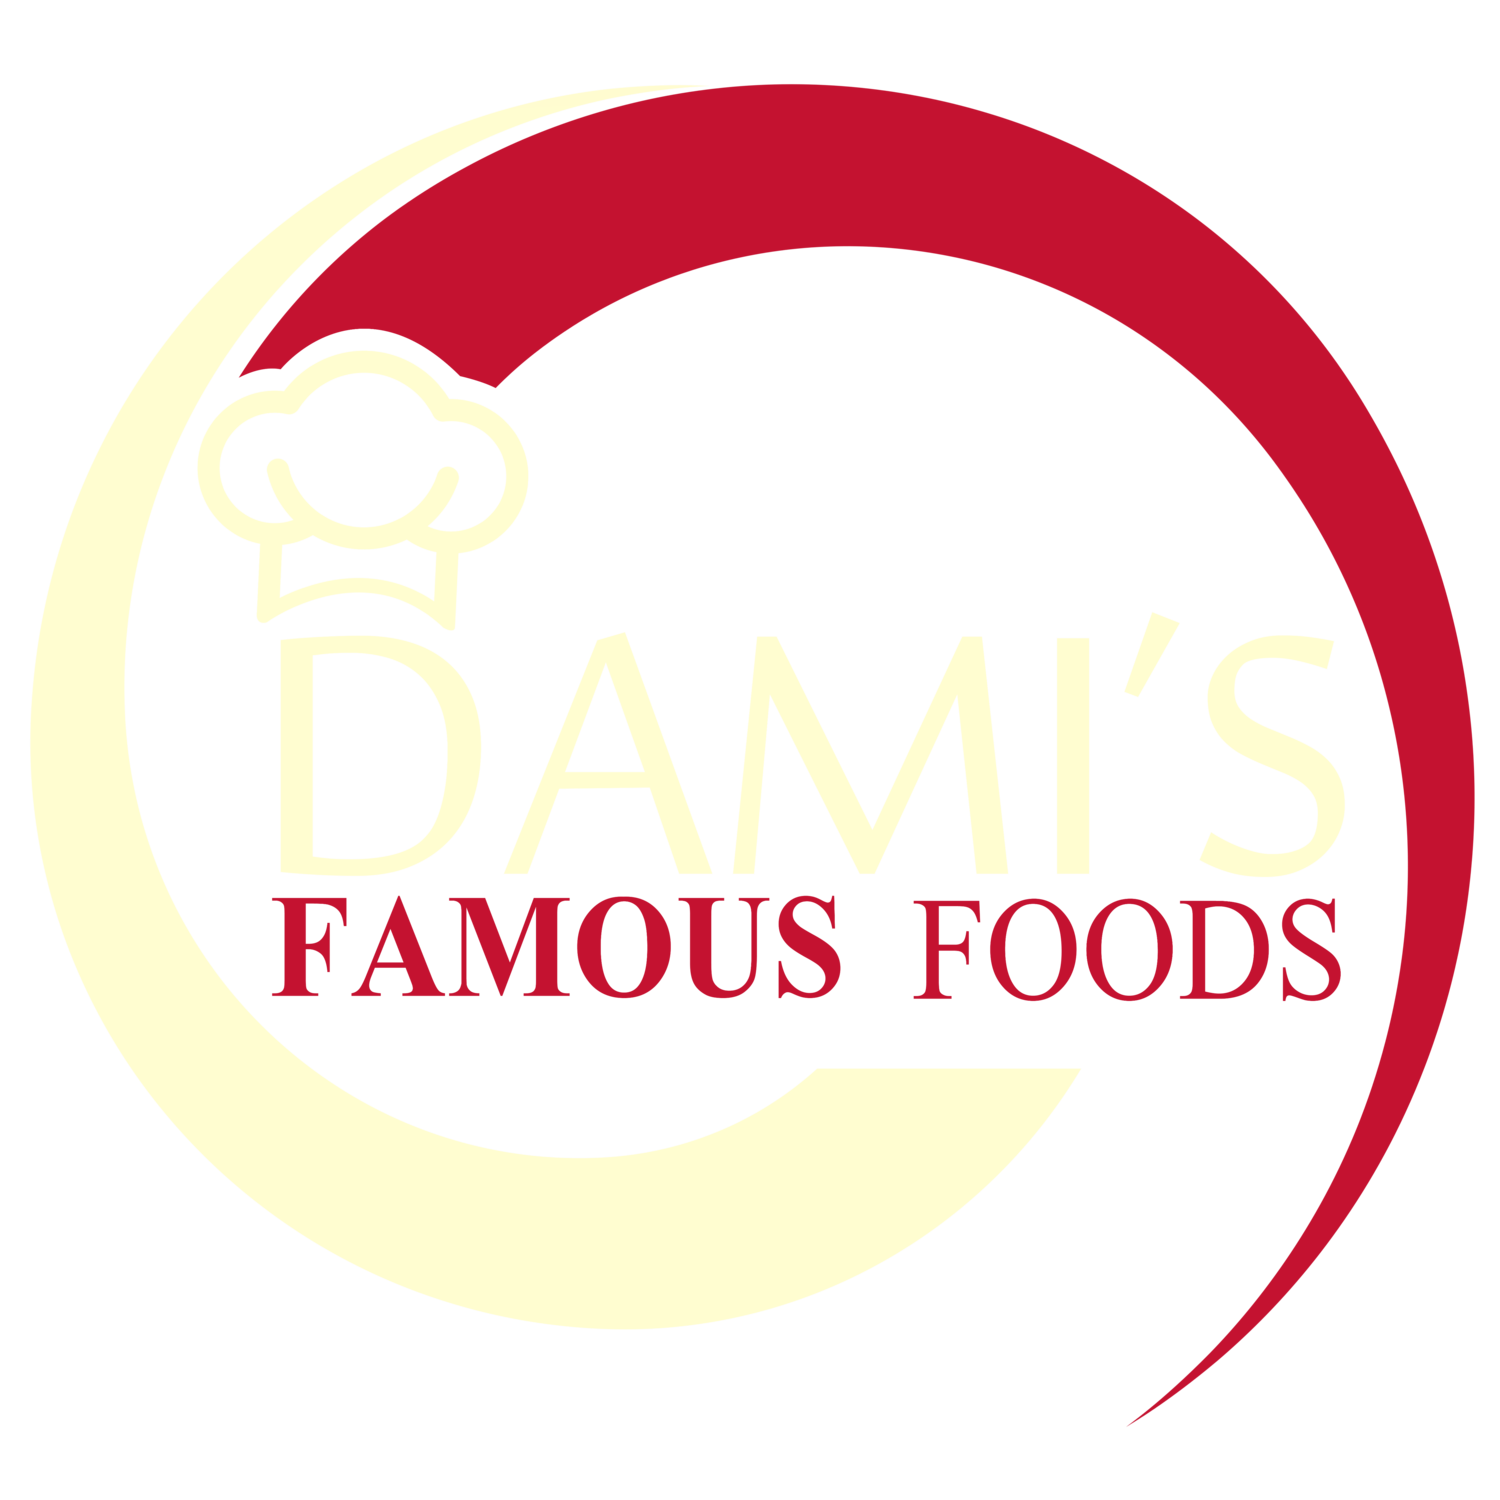 Dami's Famous Foods Catering